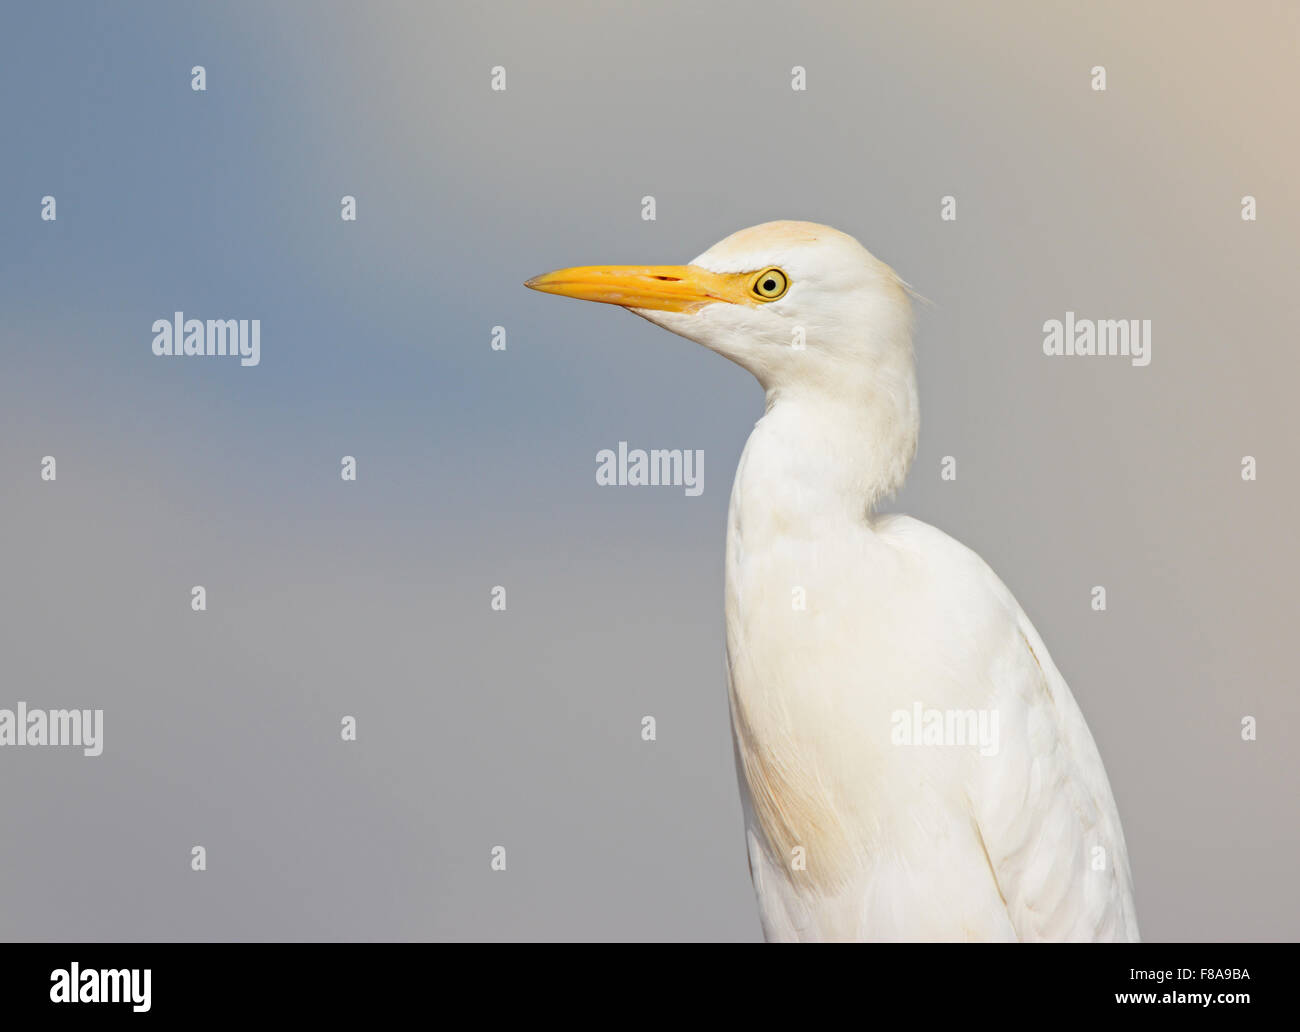 Cattle egret, Bubulcus ibis portrait Stock Photo